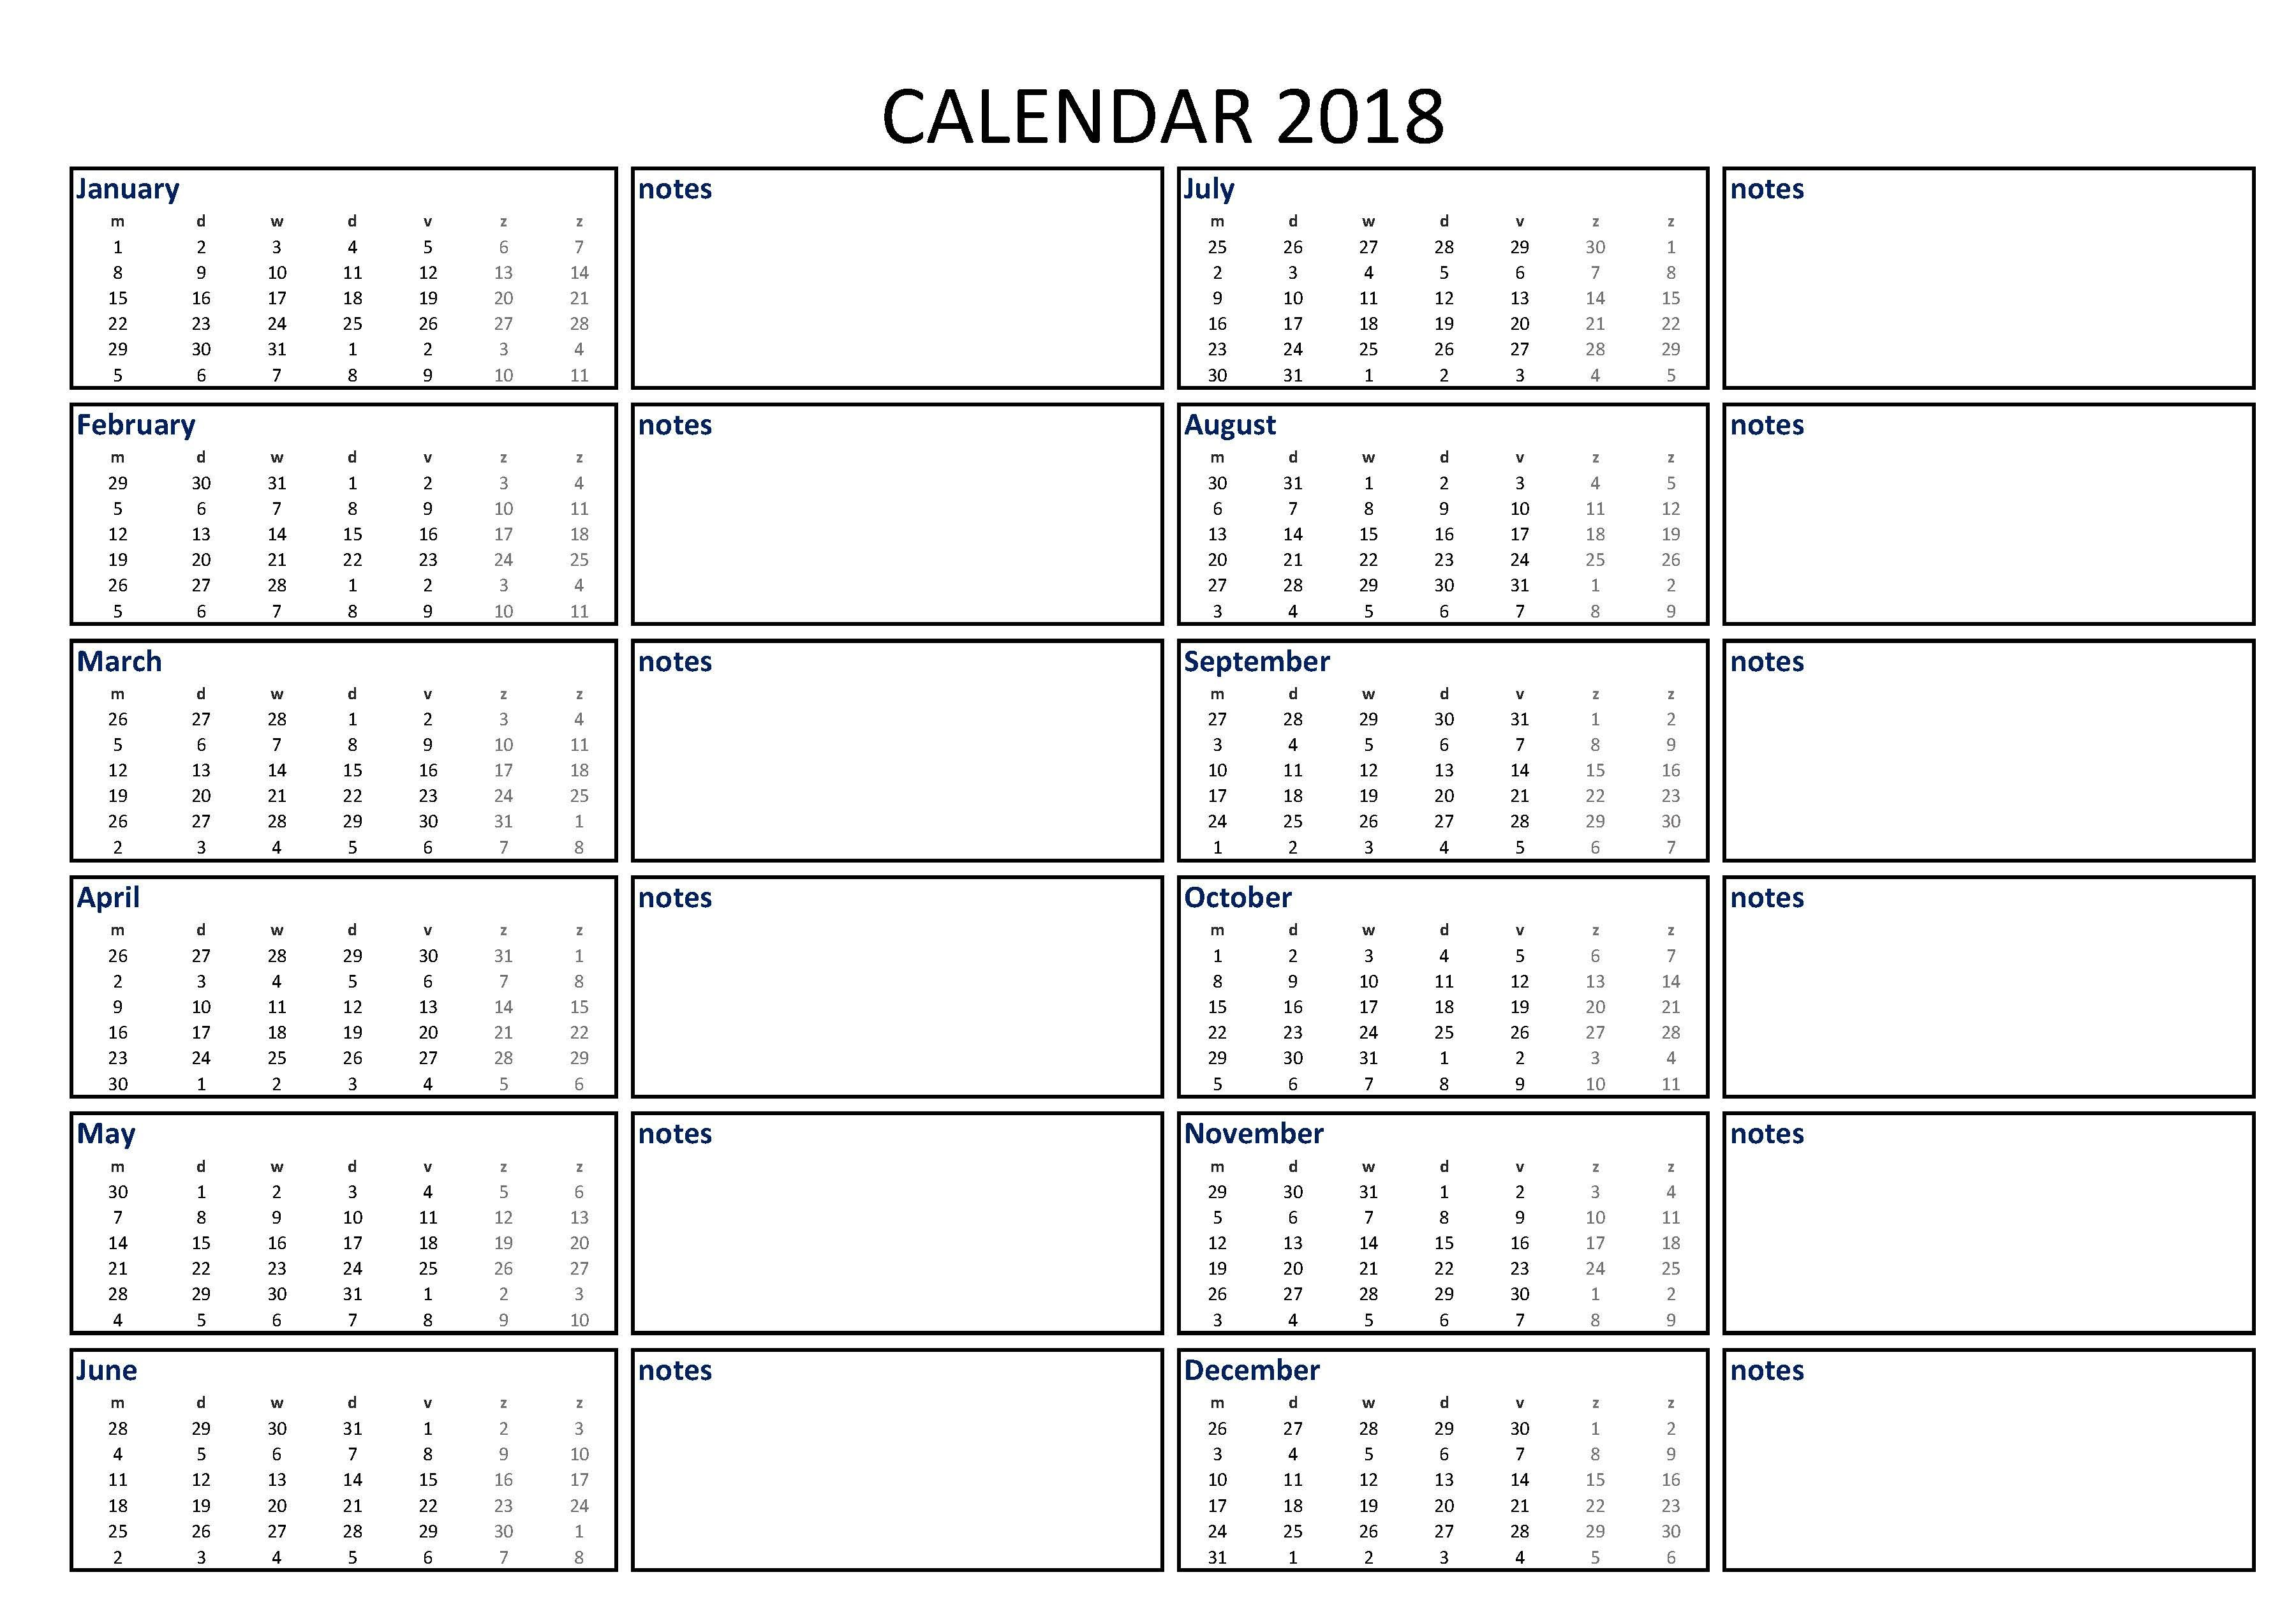 2018 Calendar Excel A3 With Notes - Download Our Free Printable 2018 in A3 Calendar Template Printable